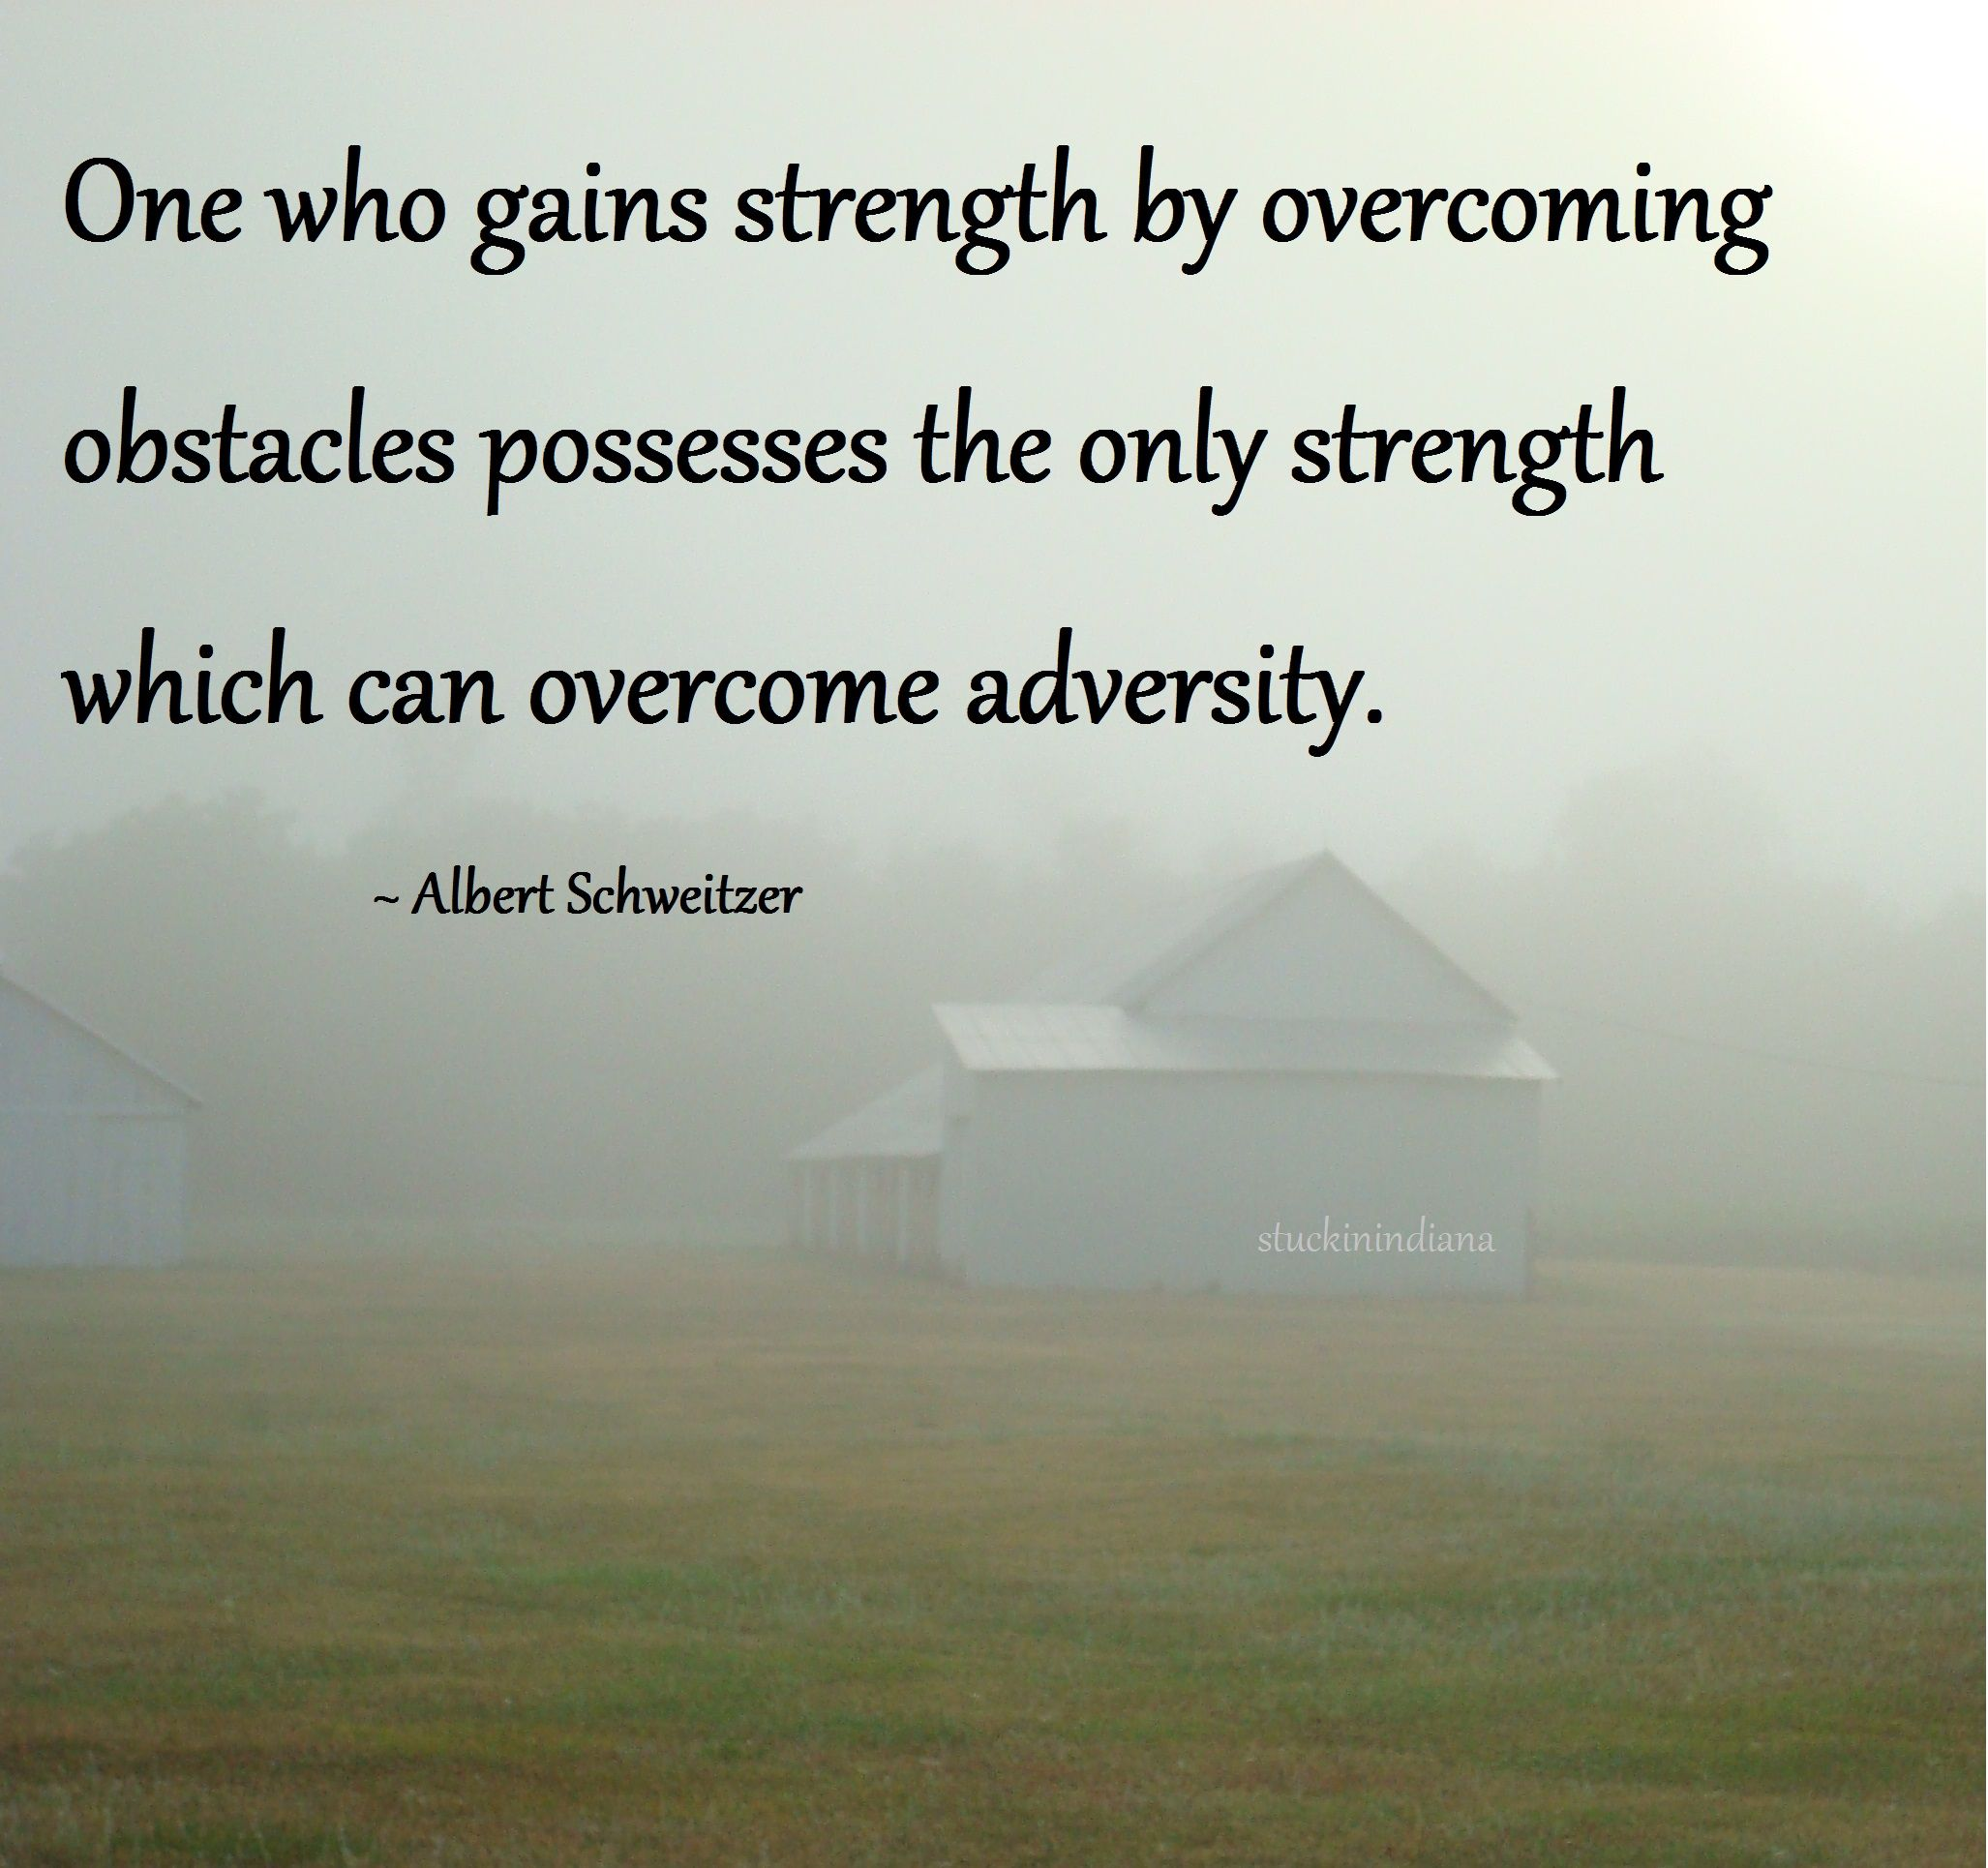 Overcoming Obstacles Quotes One Who Gains Strengthovercoming Obstacles Possesses The Only